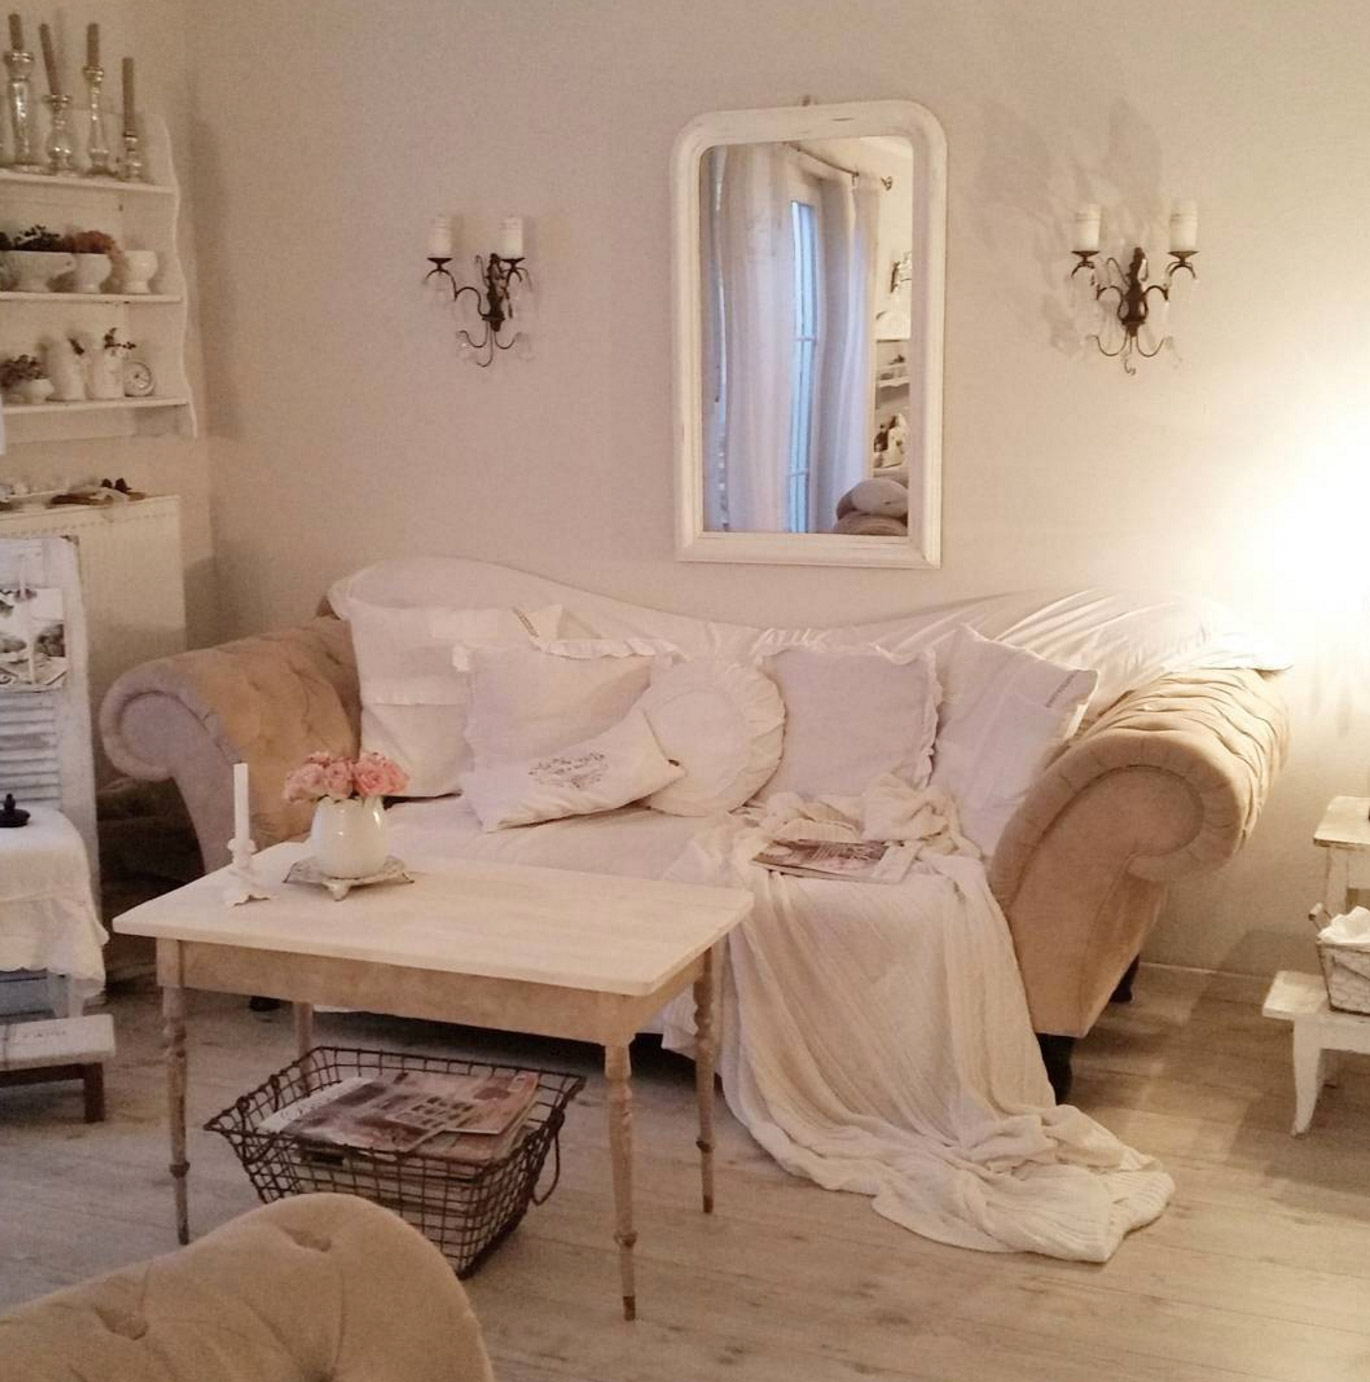 sofa-shabbychic-blog